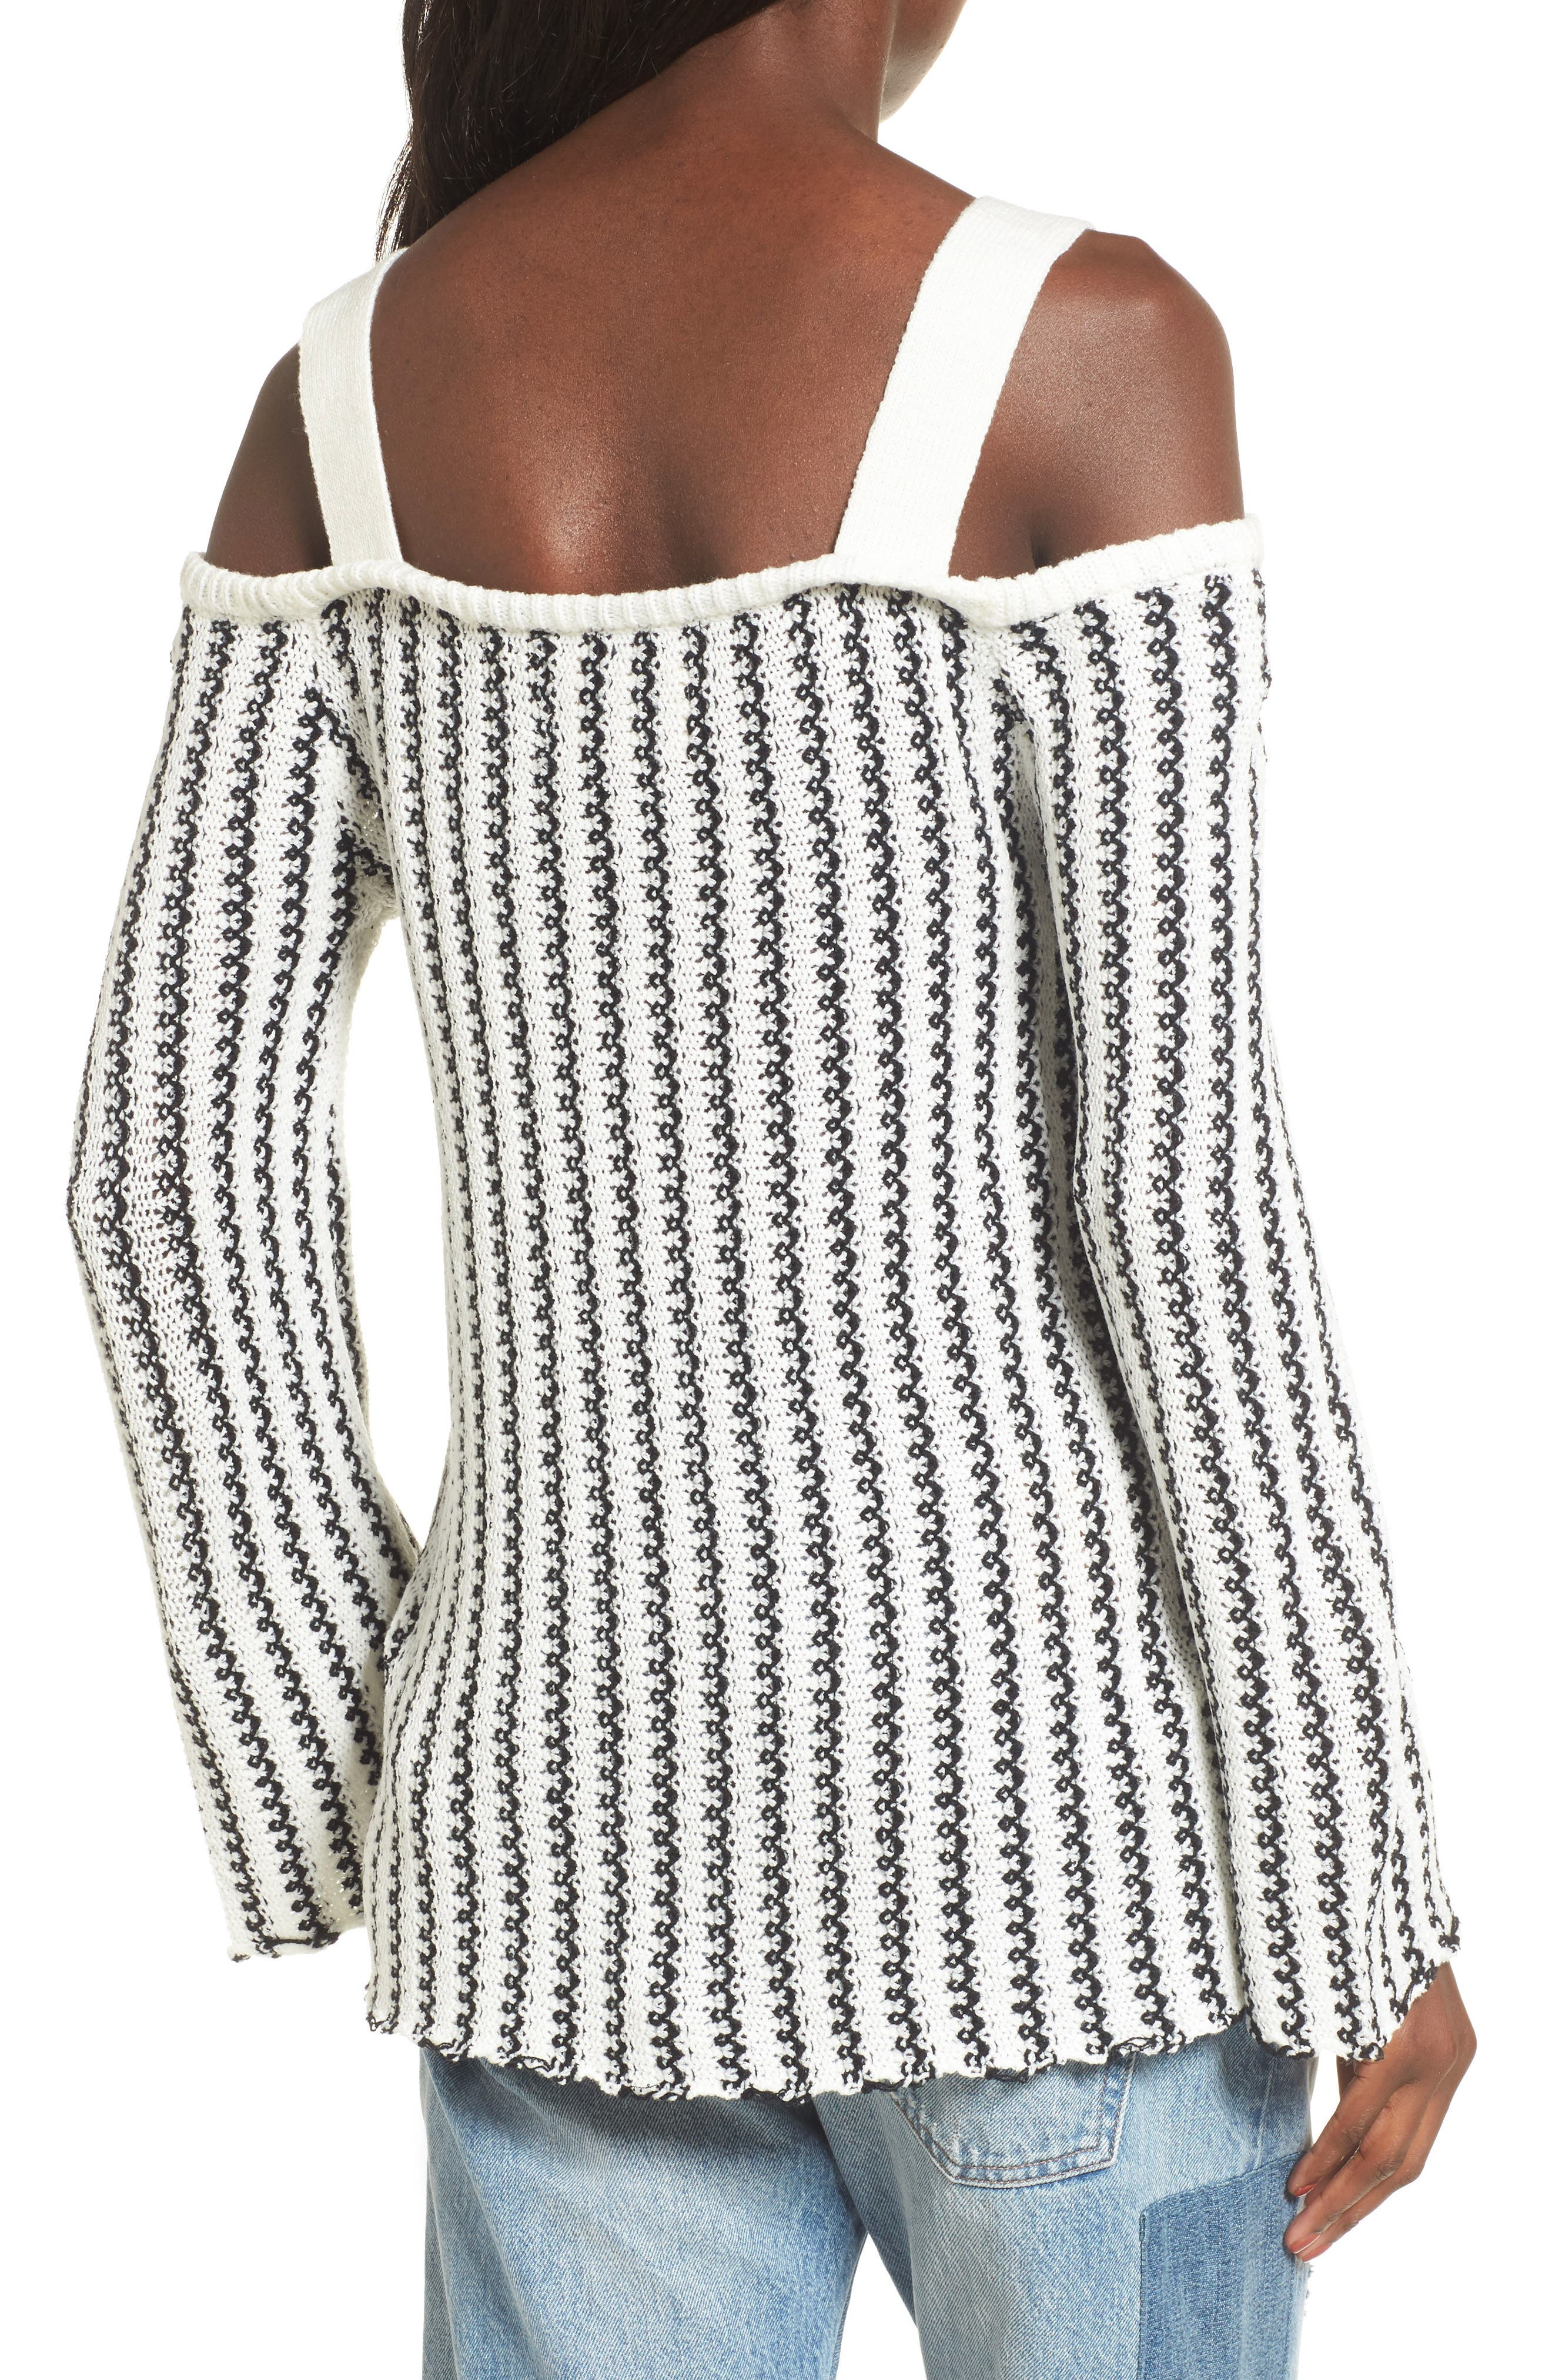 Buckle Strap Sweater,                             Alternate thumbnail 3, color,                             Ivory Black